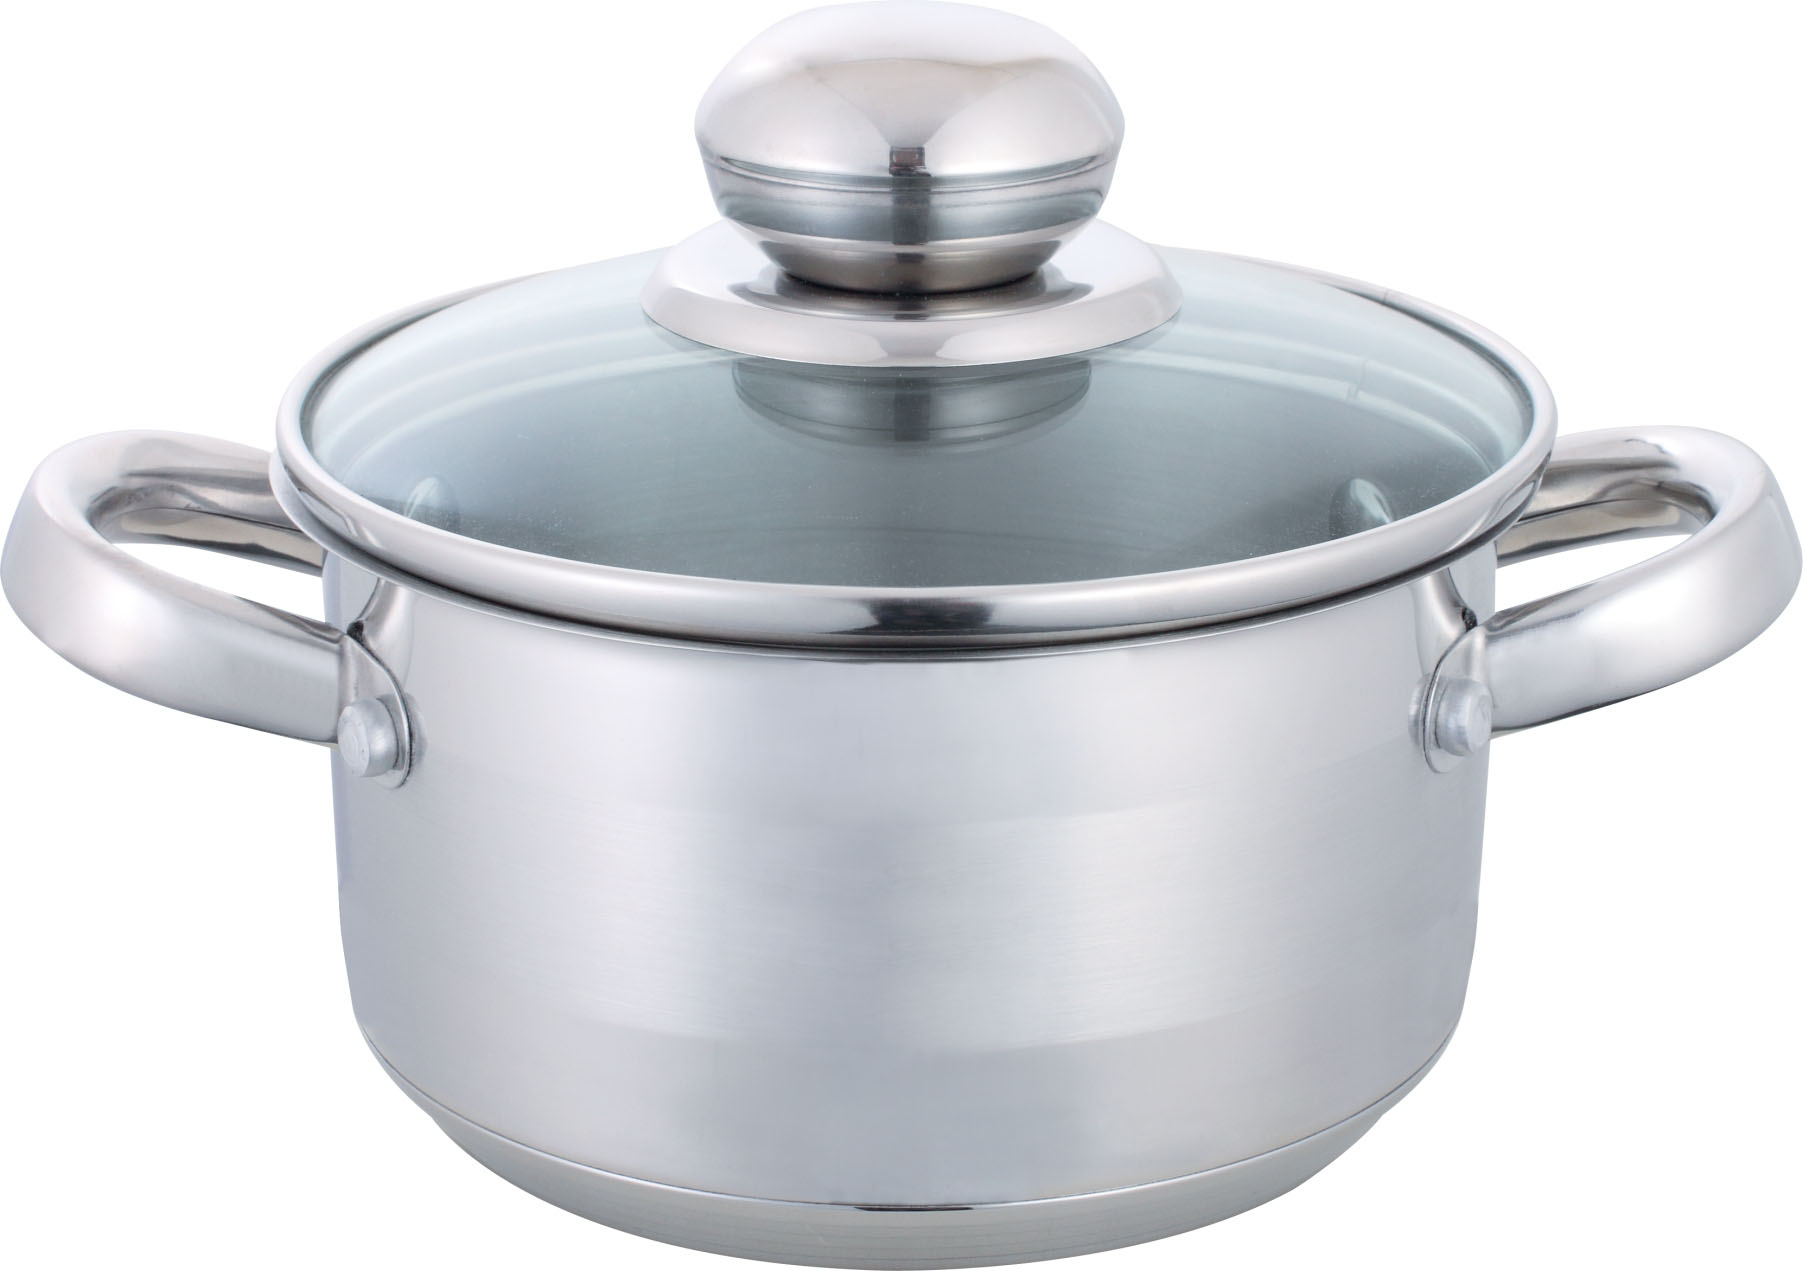 Economic Casserole with lid